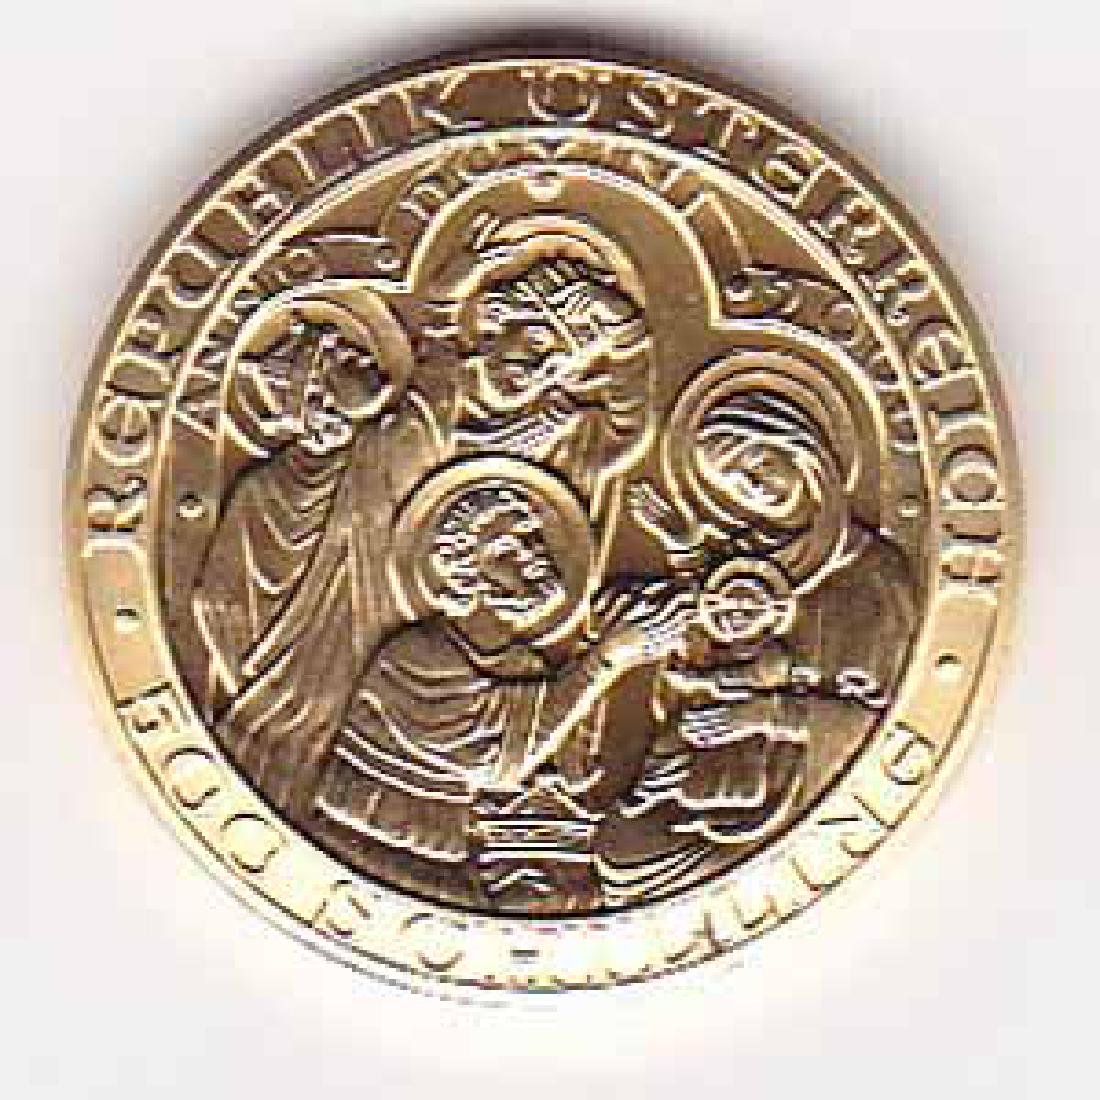 Austria 500 schilling gold 2000 Birth of Jesus